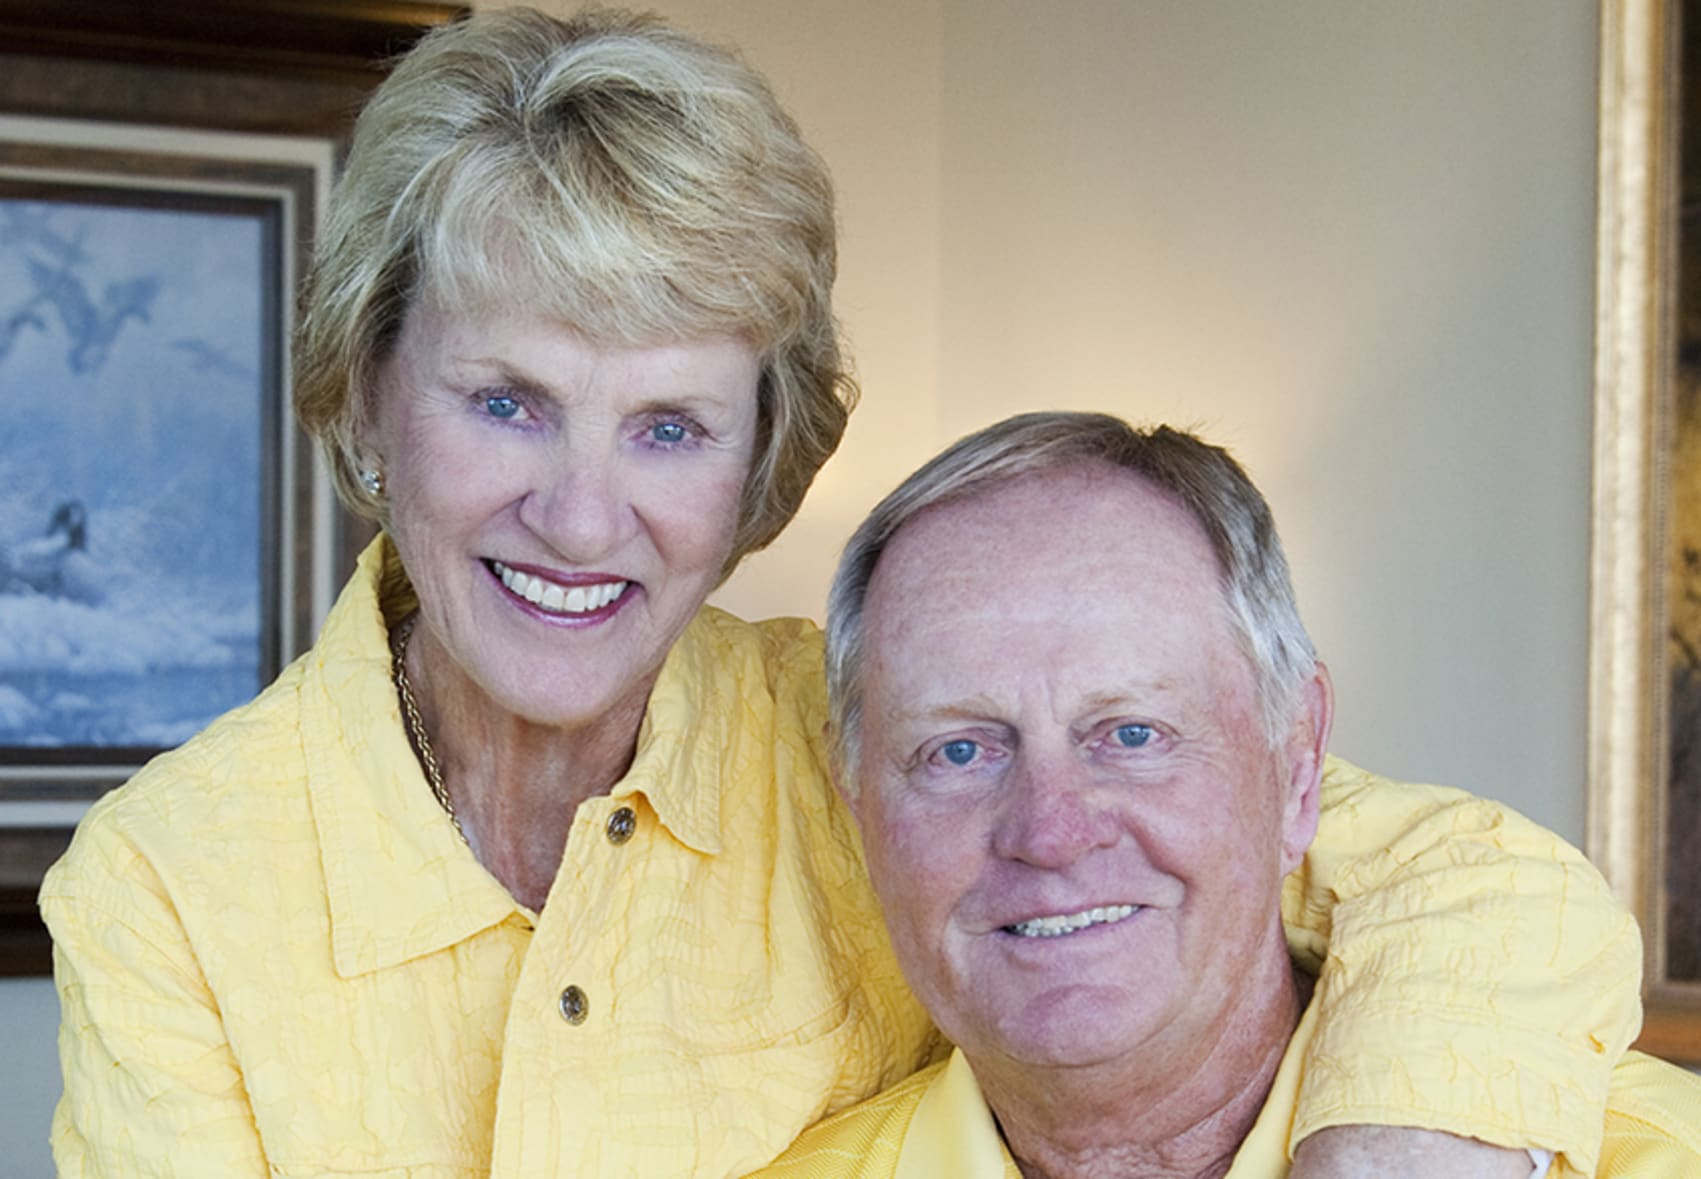 Jack and Barbara Nicklaus, with support from the PGA TOUR, Ask Golf